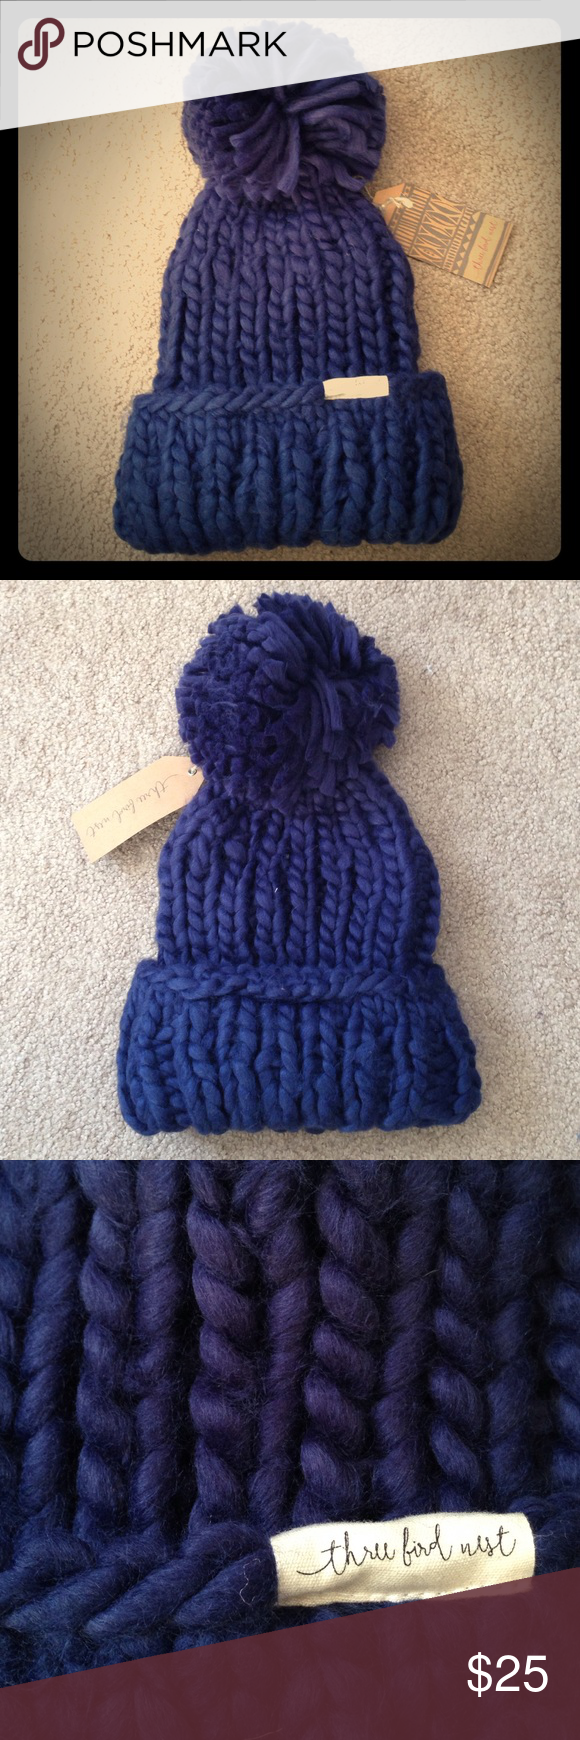 Chunky Knit Pom Pom Beanie Brand new from Three Bird Nest. Adorable beanie with a thick, chunky knit that is super soft and warm. Slouchy fit. You could adjust where the bottom folds up if you want it to be more or less slouchy. Large pom pom on top. In a versatile navy color. Three Bird Nest Accessories Hats